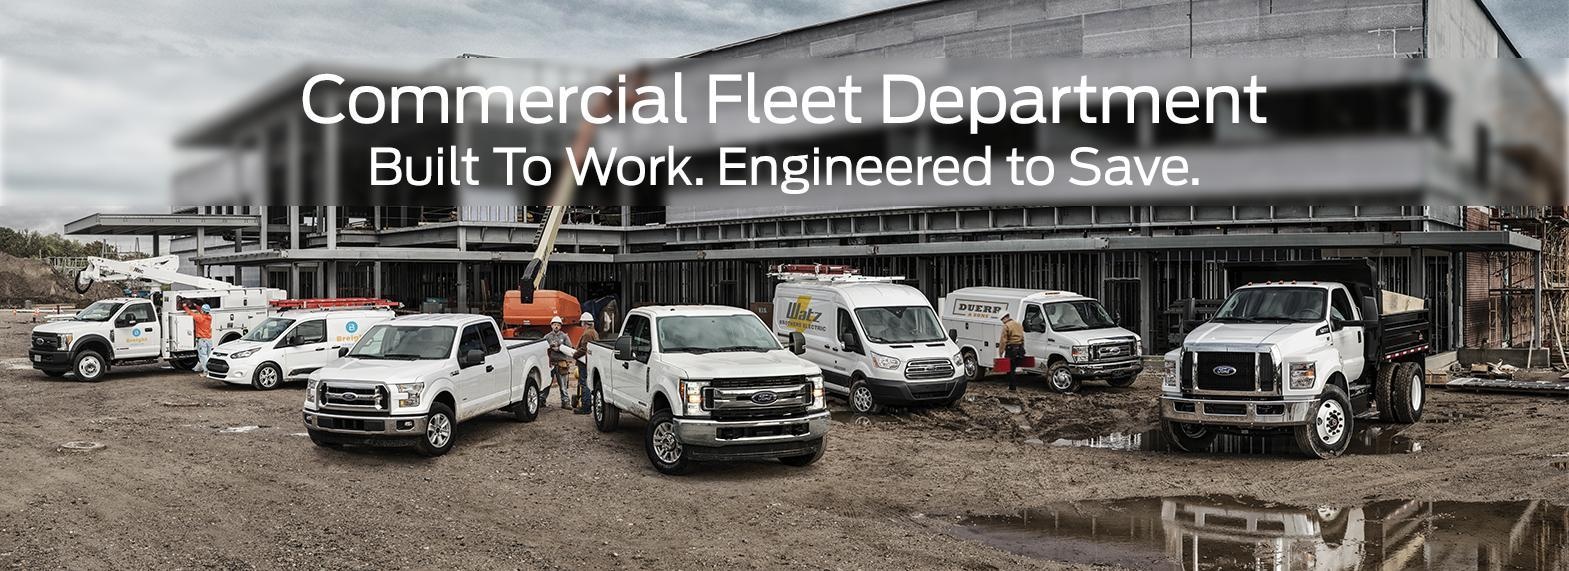 Commercial Fleet Vehicles | Wayne Pitman Ford in Guelph